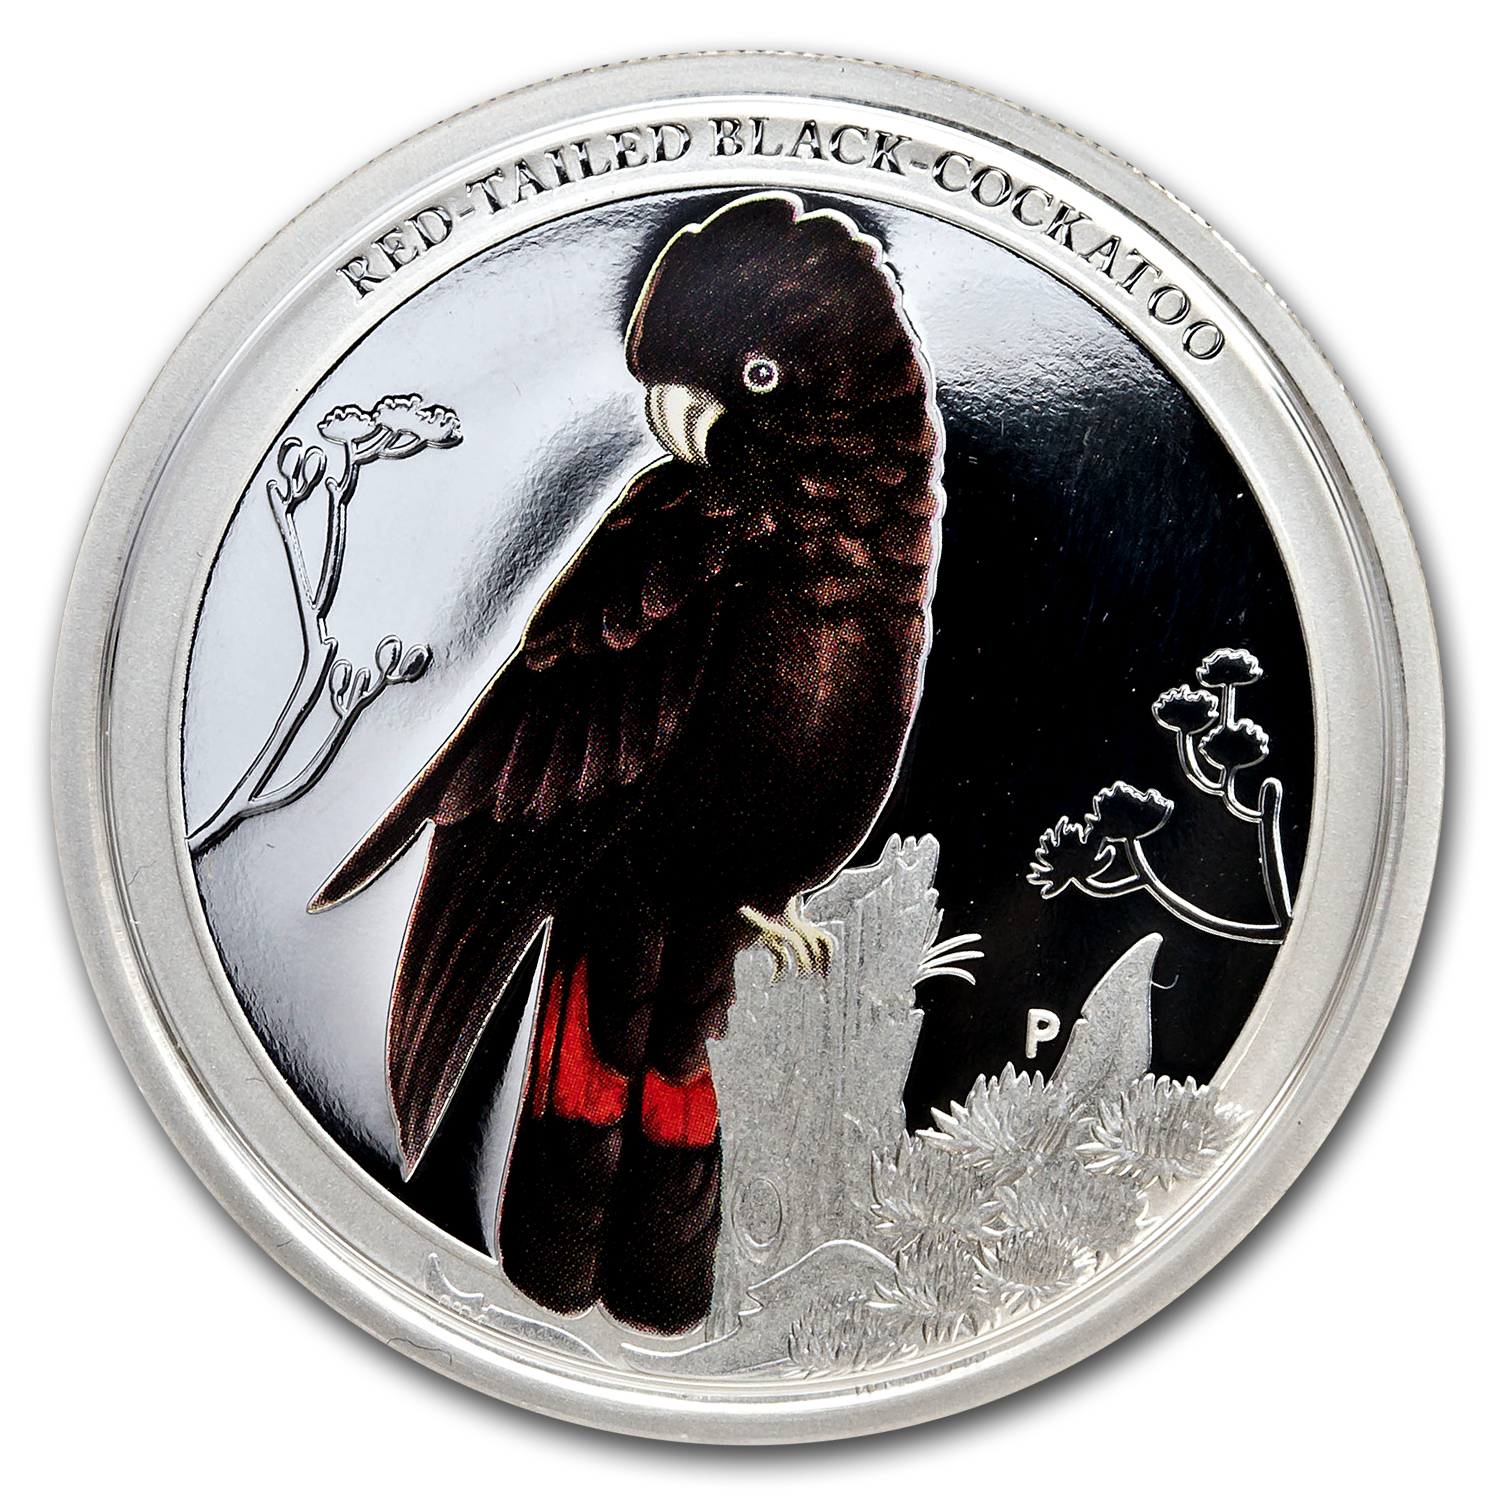 2013 1/2 oz Silver Red Tailed Black Cockatoo - Birds of Australia